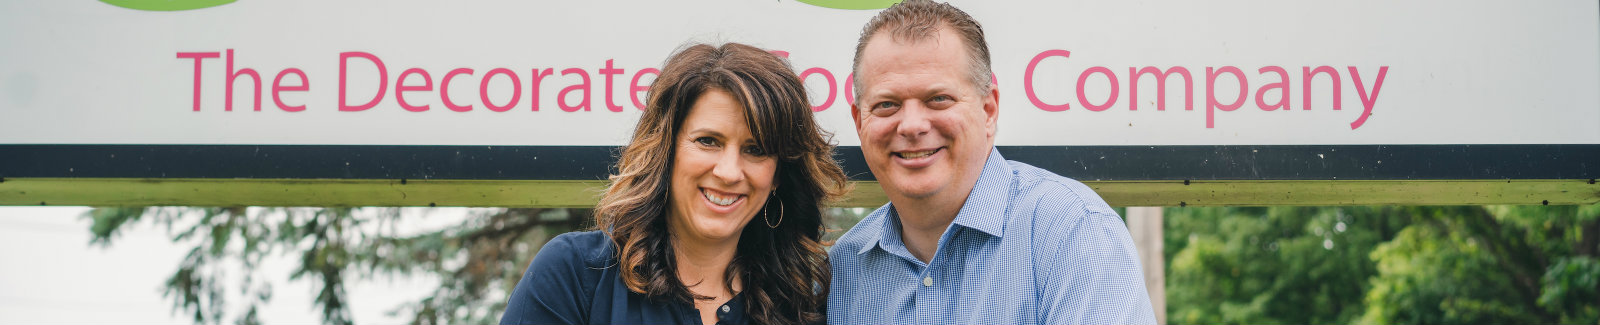 Pete Hess and Tina Corso-Hess, Corso's Cookies owners in front of their business sign.